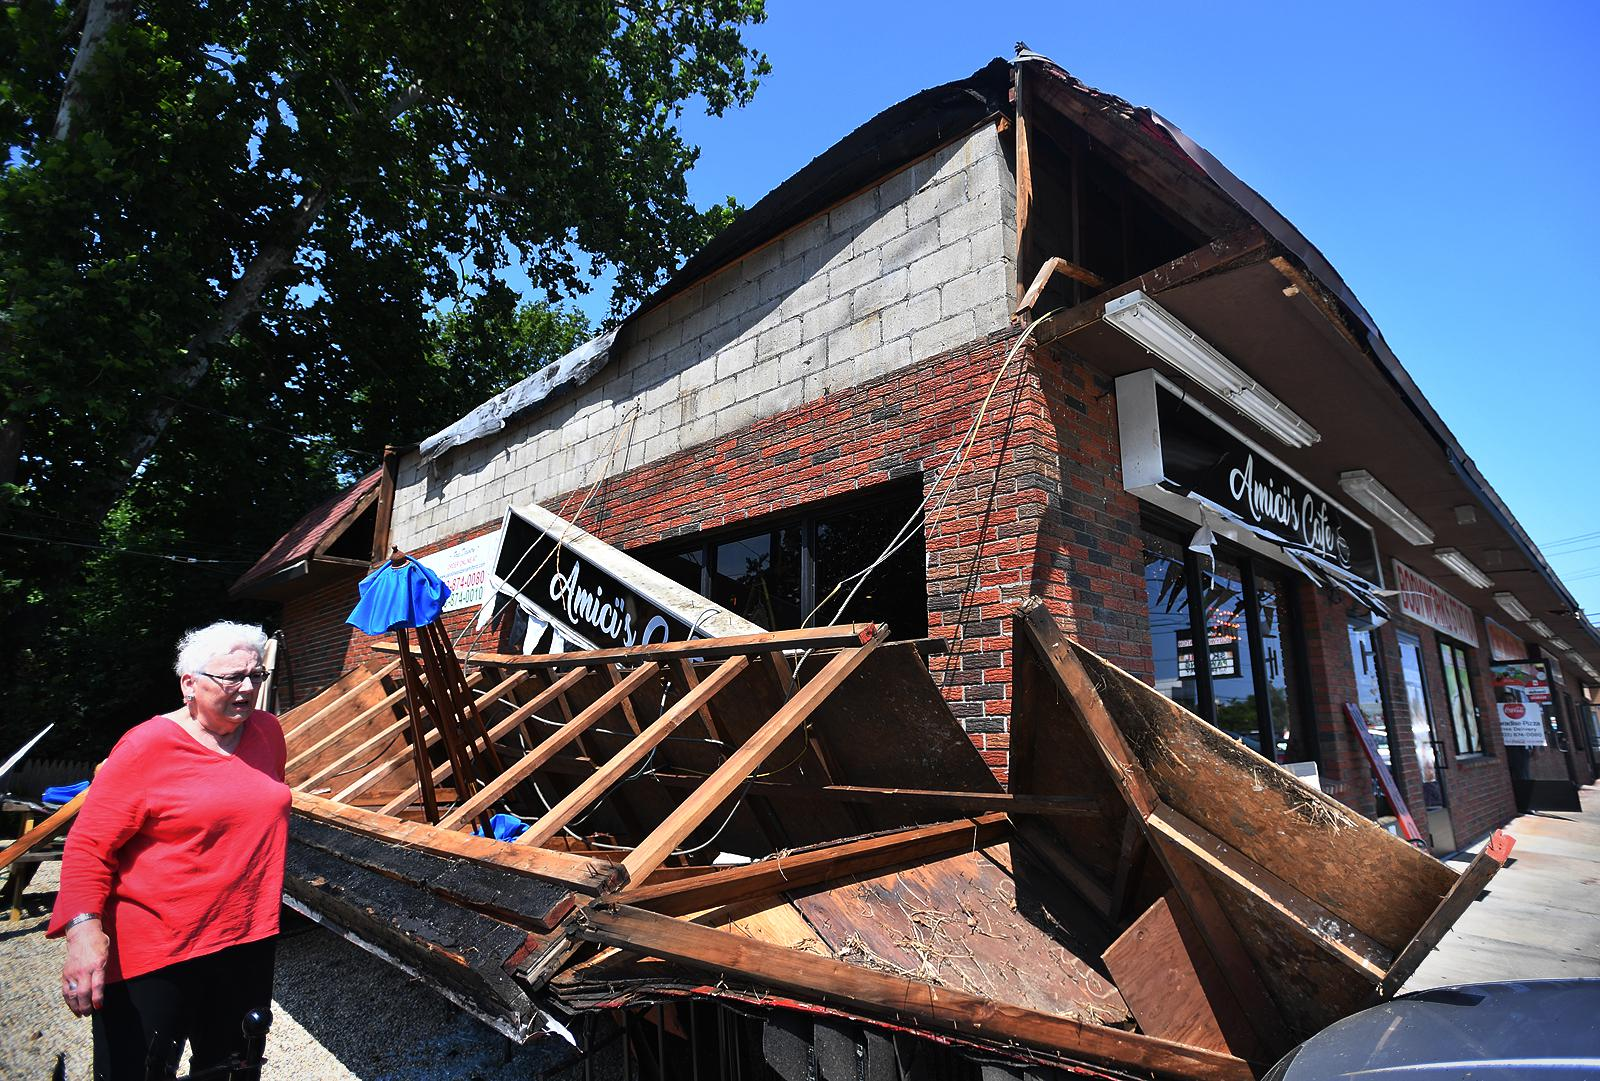 No injuries when awning falls from café